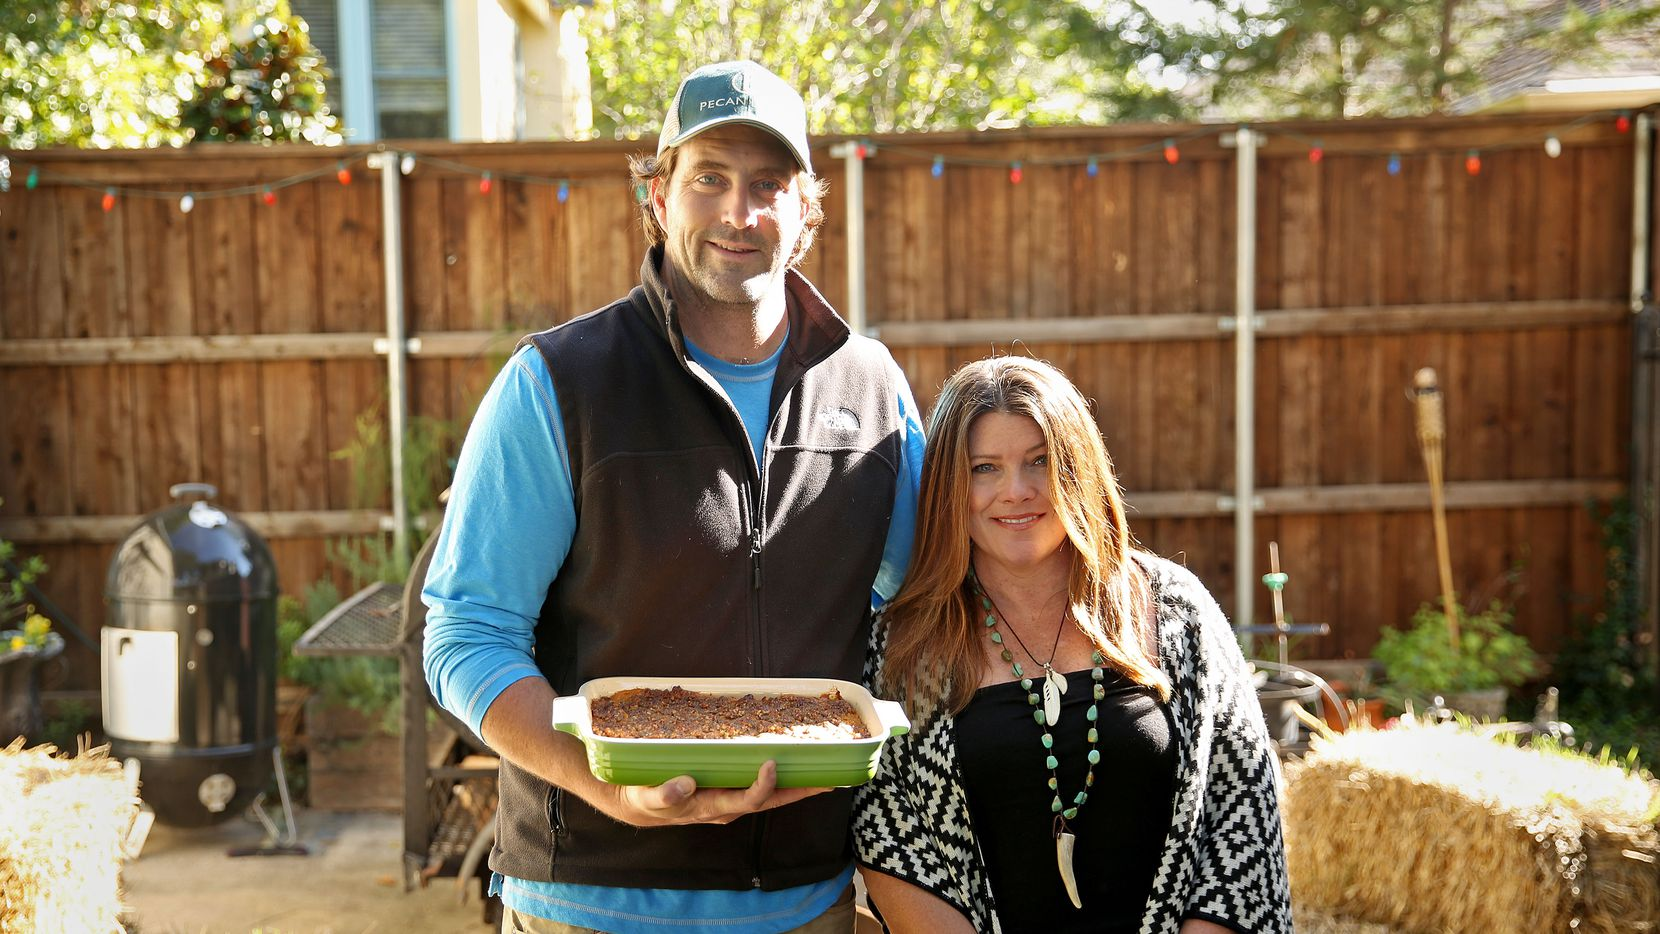 Diane Fourton and Justin Fourton, the co-owners of the Pecan Lodge restaurant in Deep Ellum, have launched a new nonprofit organization.